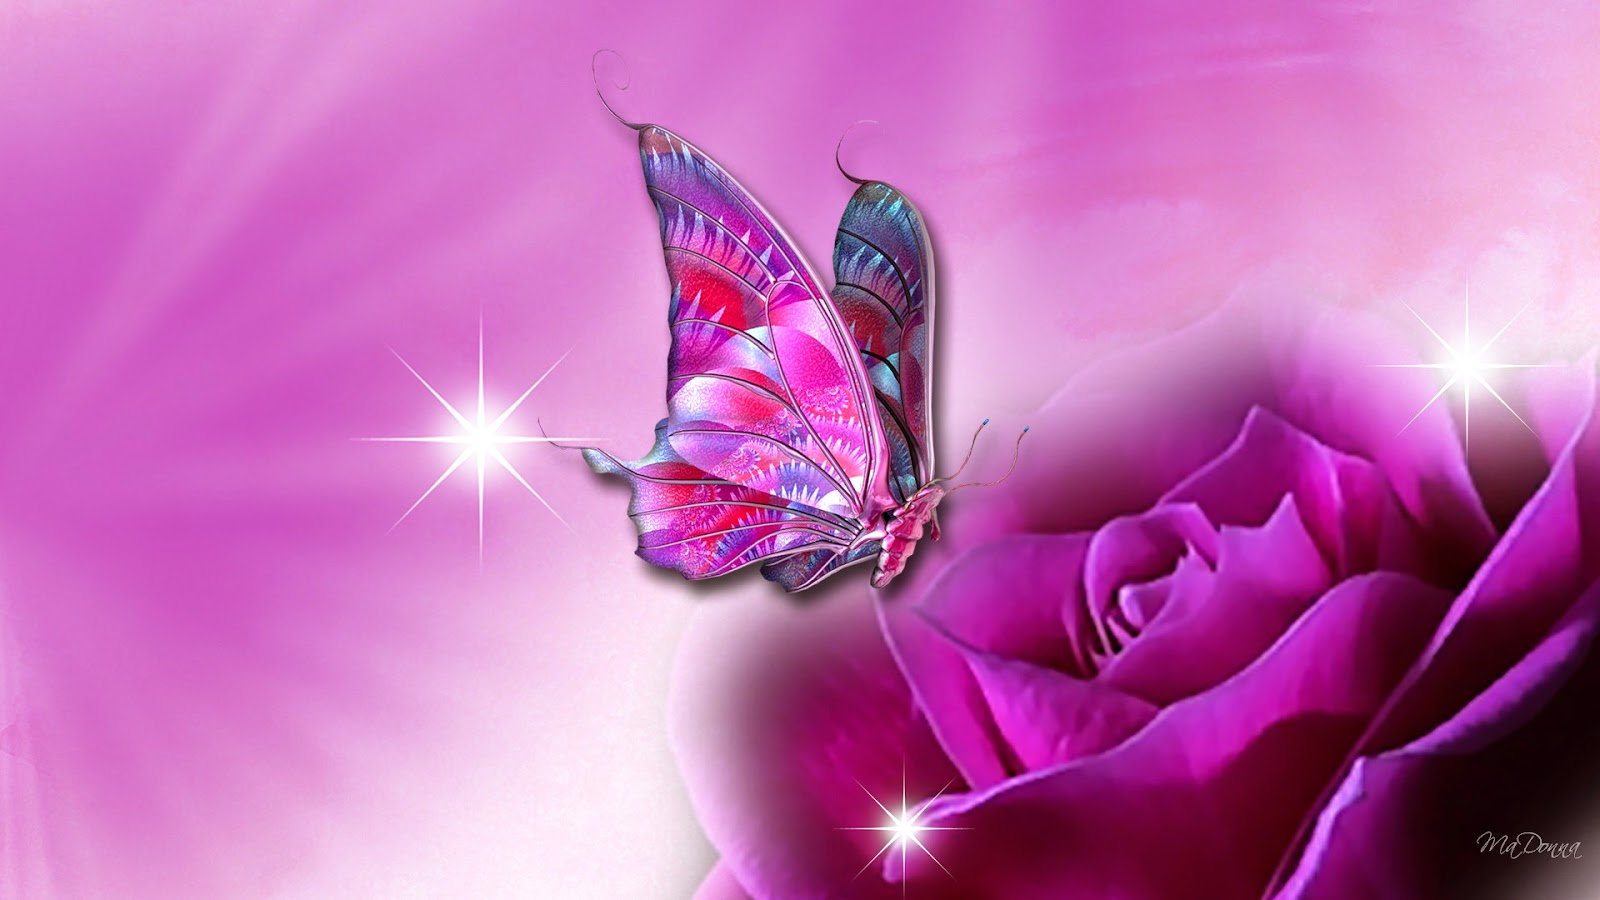 Pink Butterfly On Purple Flower Wallpaper Butterfly Wallpapers For Laptop 249157 Hd Wallpaper Backgrounds Download